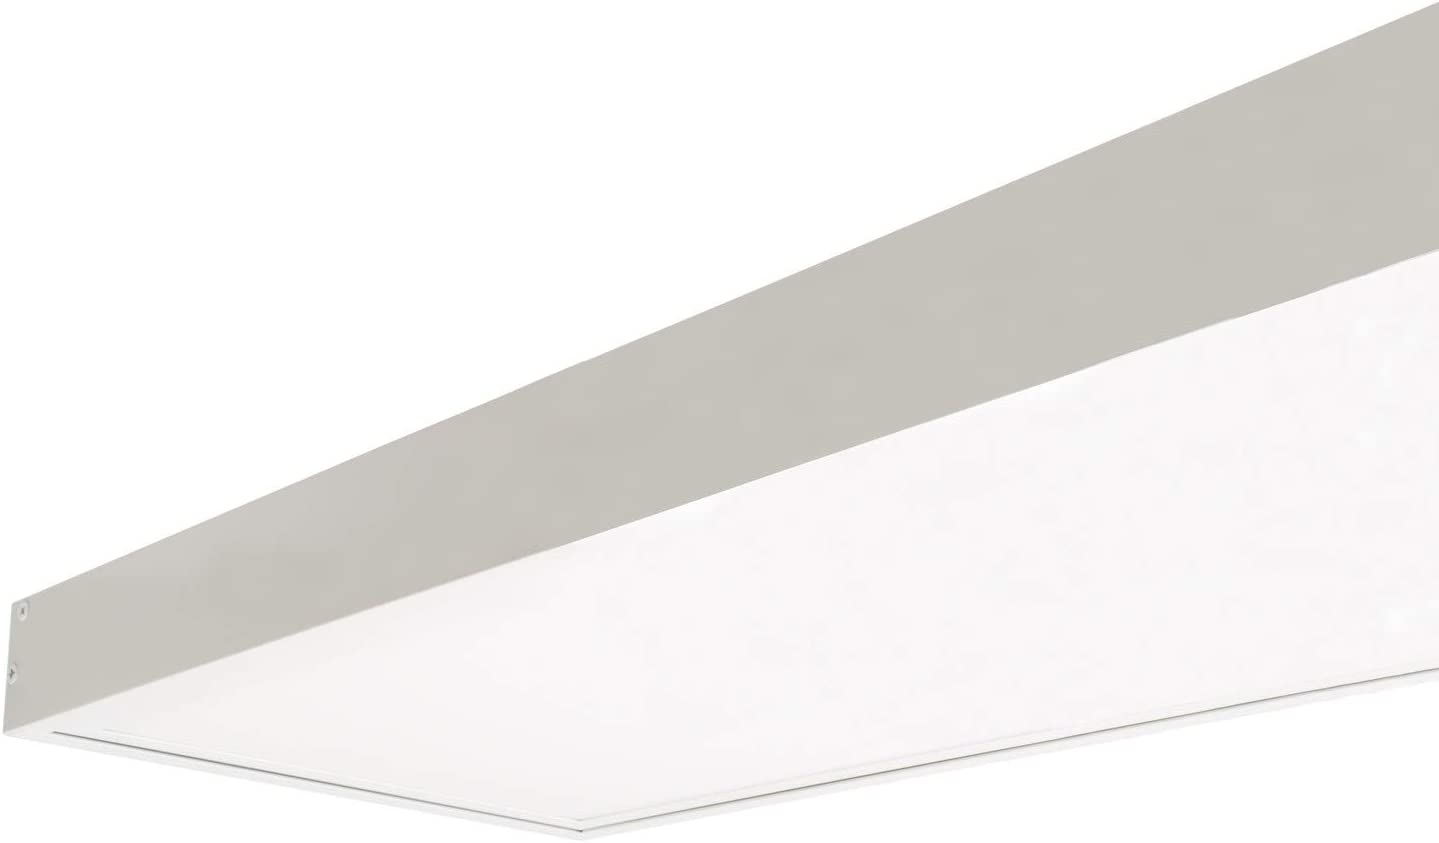 Kit de Superficie para Paneles Slim 120x30cm Blanco